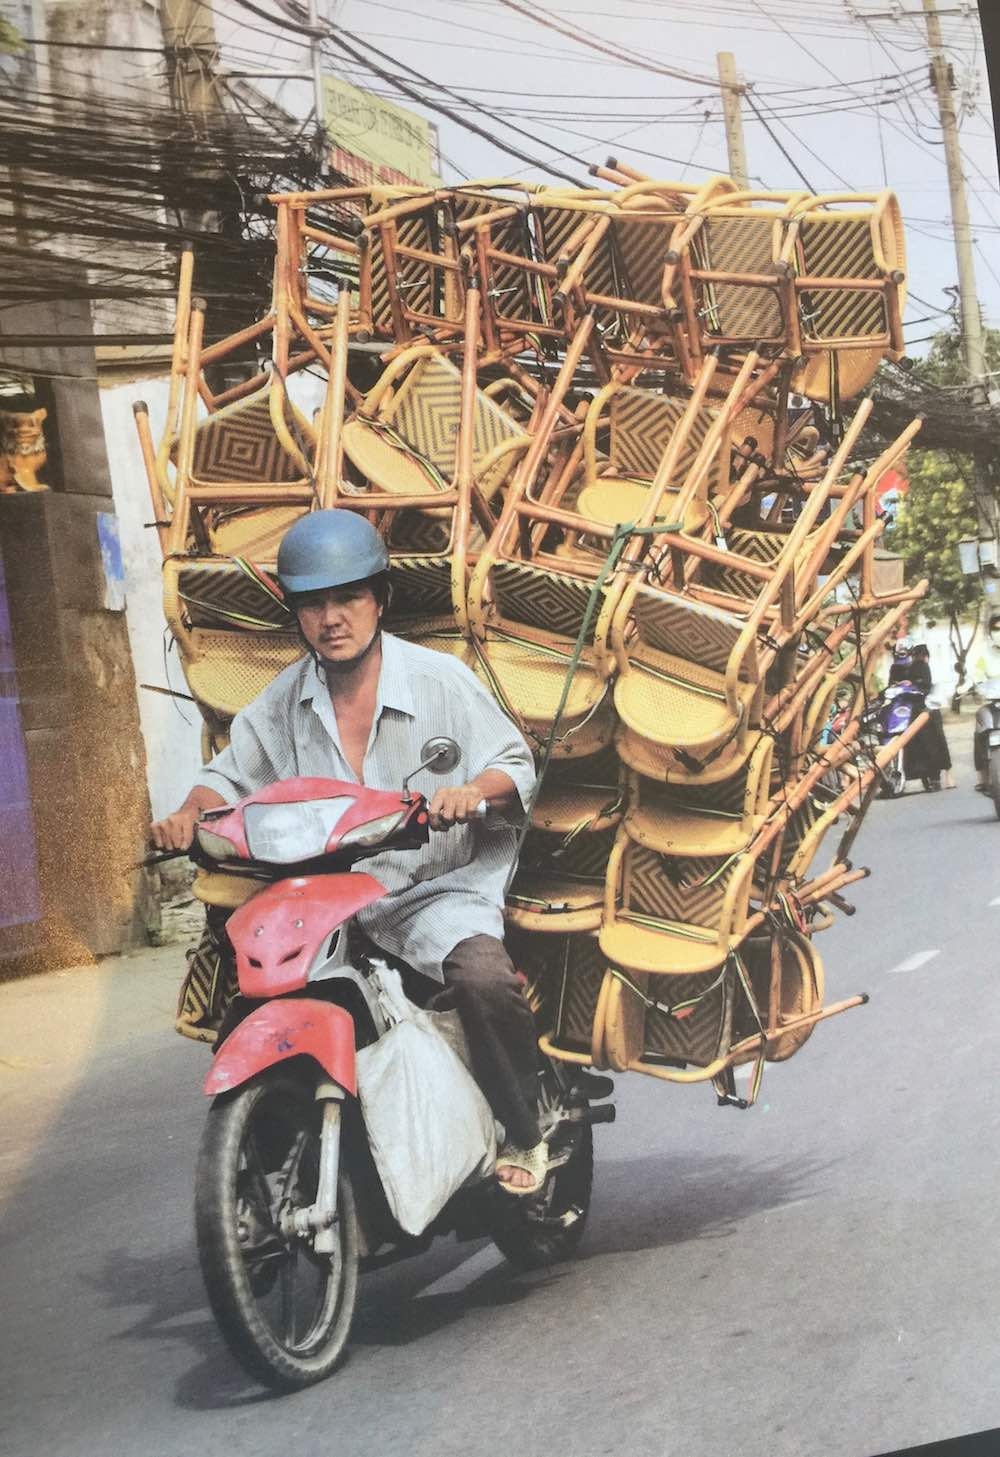 Bike loaded with lots of chairs |curlytraveller.com